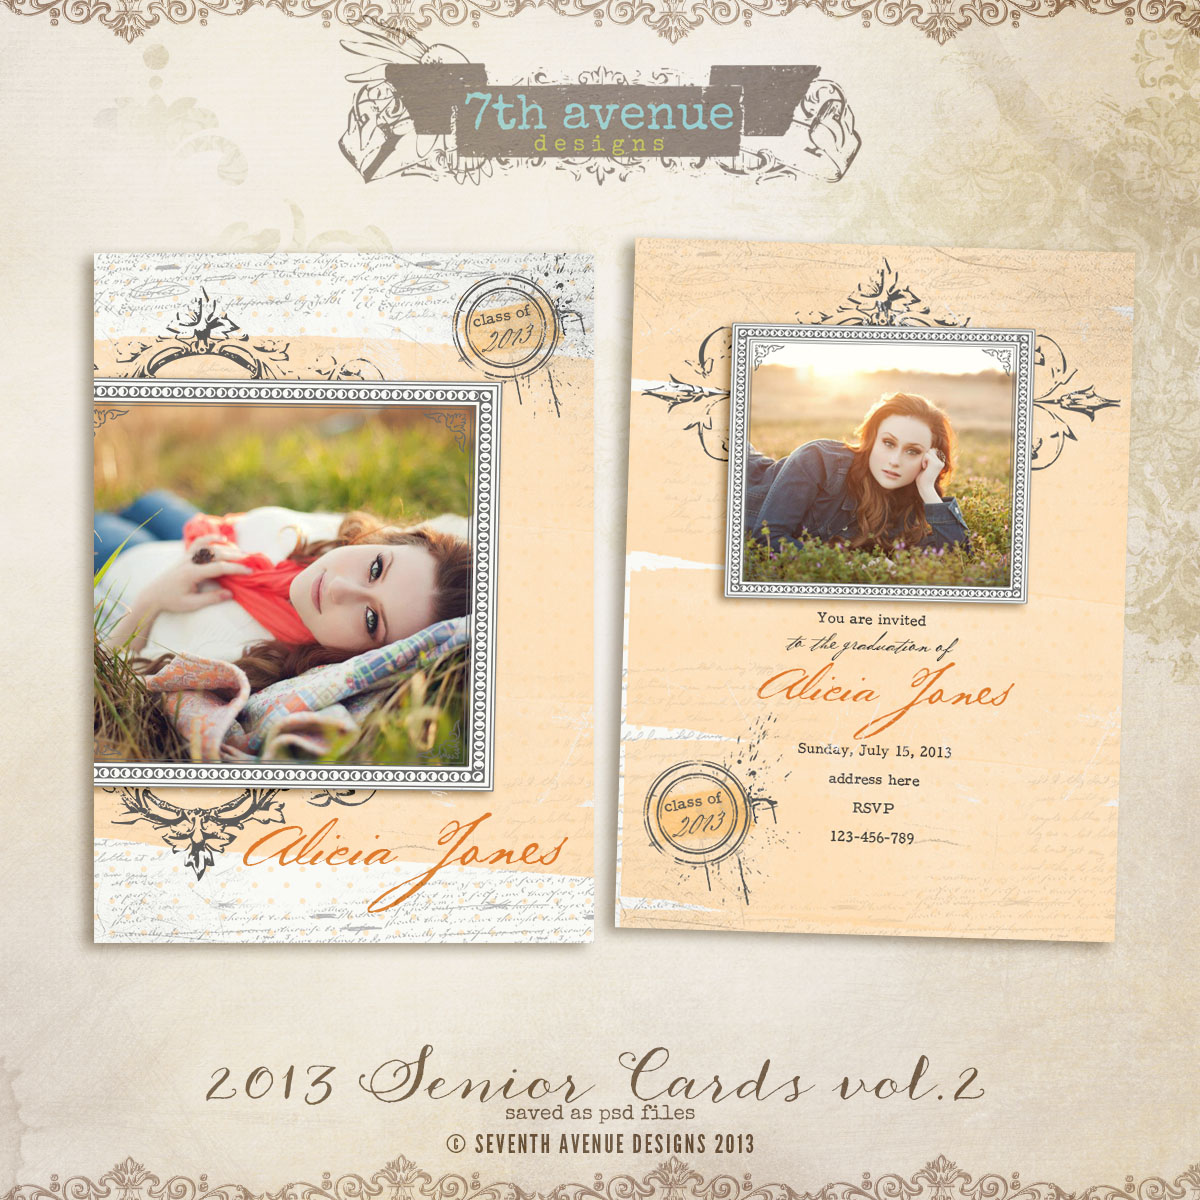 2013 Senior Card Templates no.2